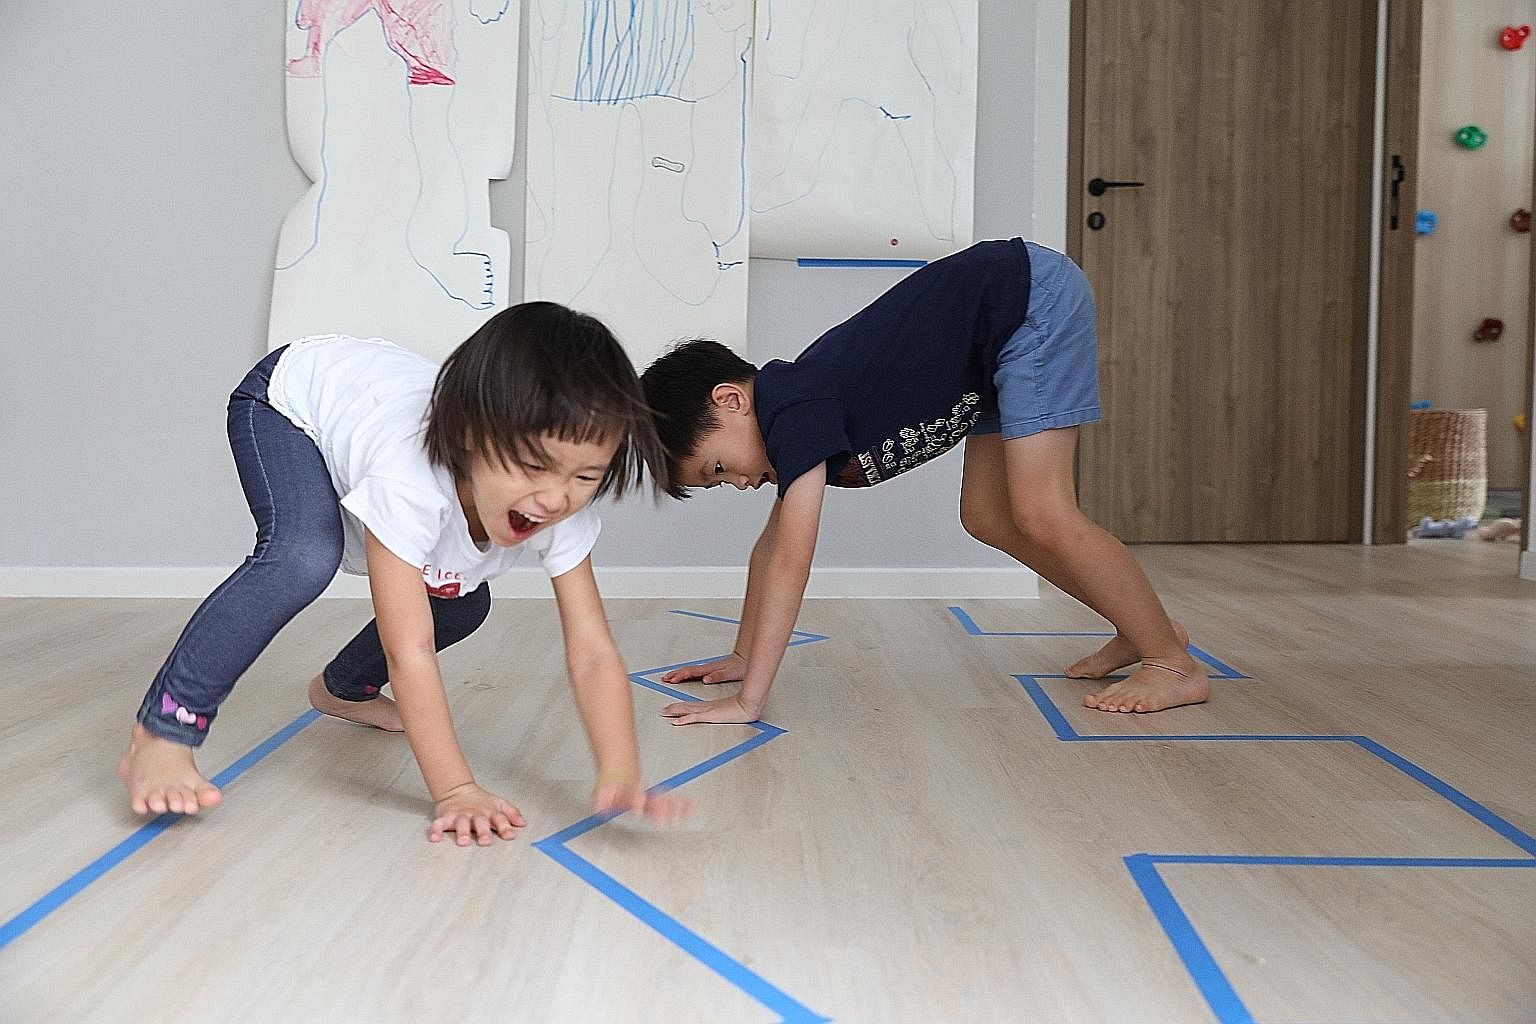 Parents can use items in the house to create activities for children, says Ms Fynn Sor, who runs an activity resource website called Happy Tot Shelf. Here, her children, Riley, four, and Zachary, seven, go through a line obstacle course where they tr